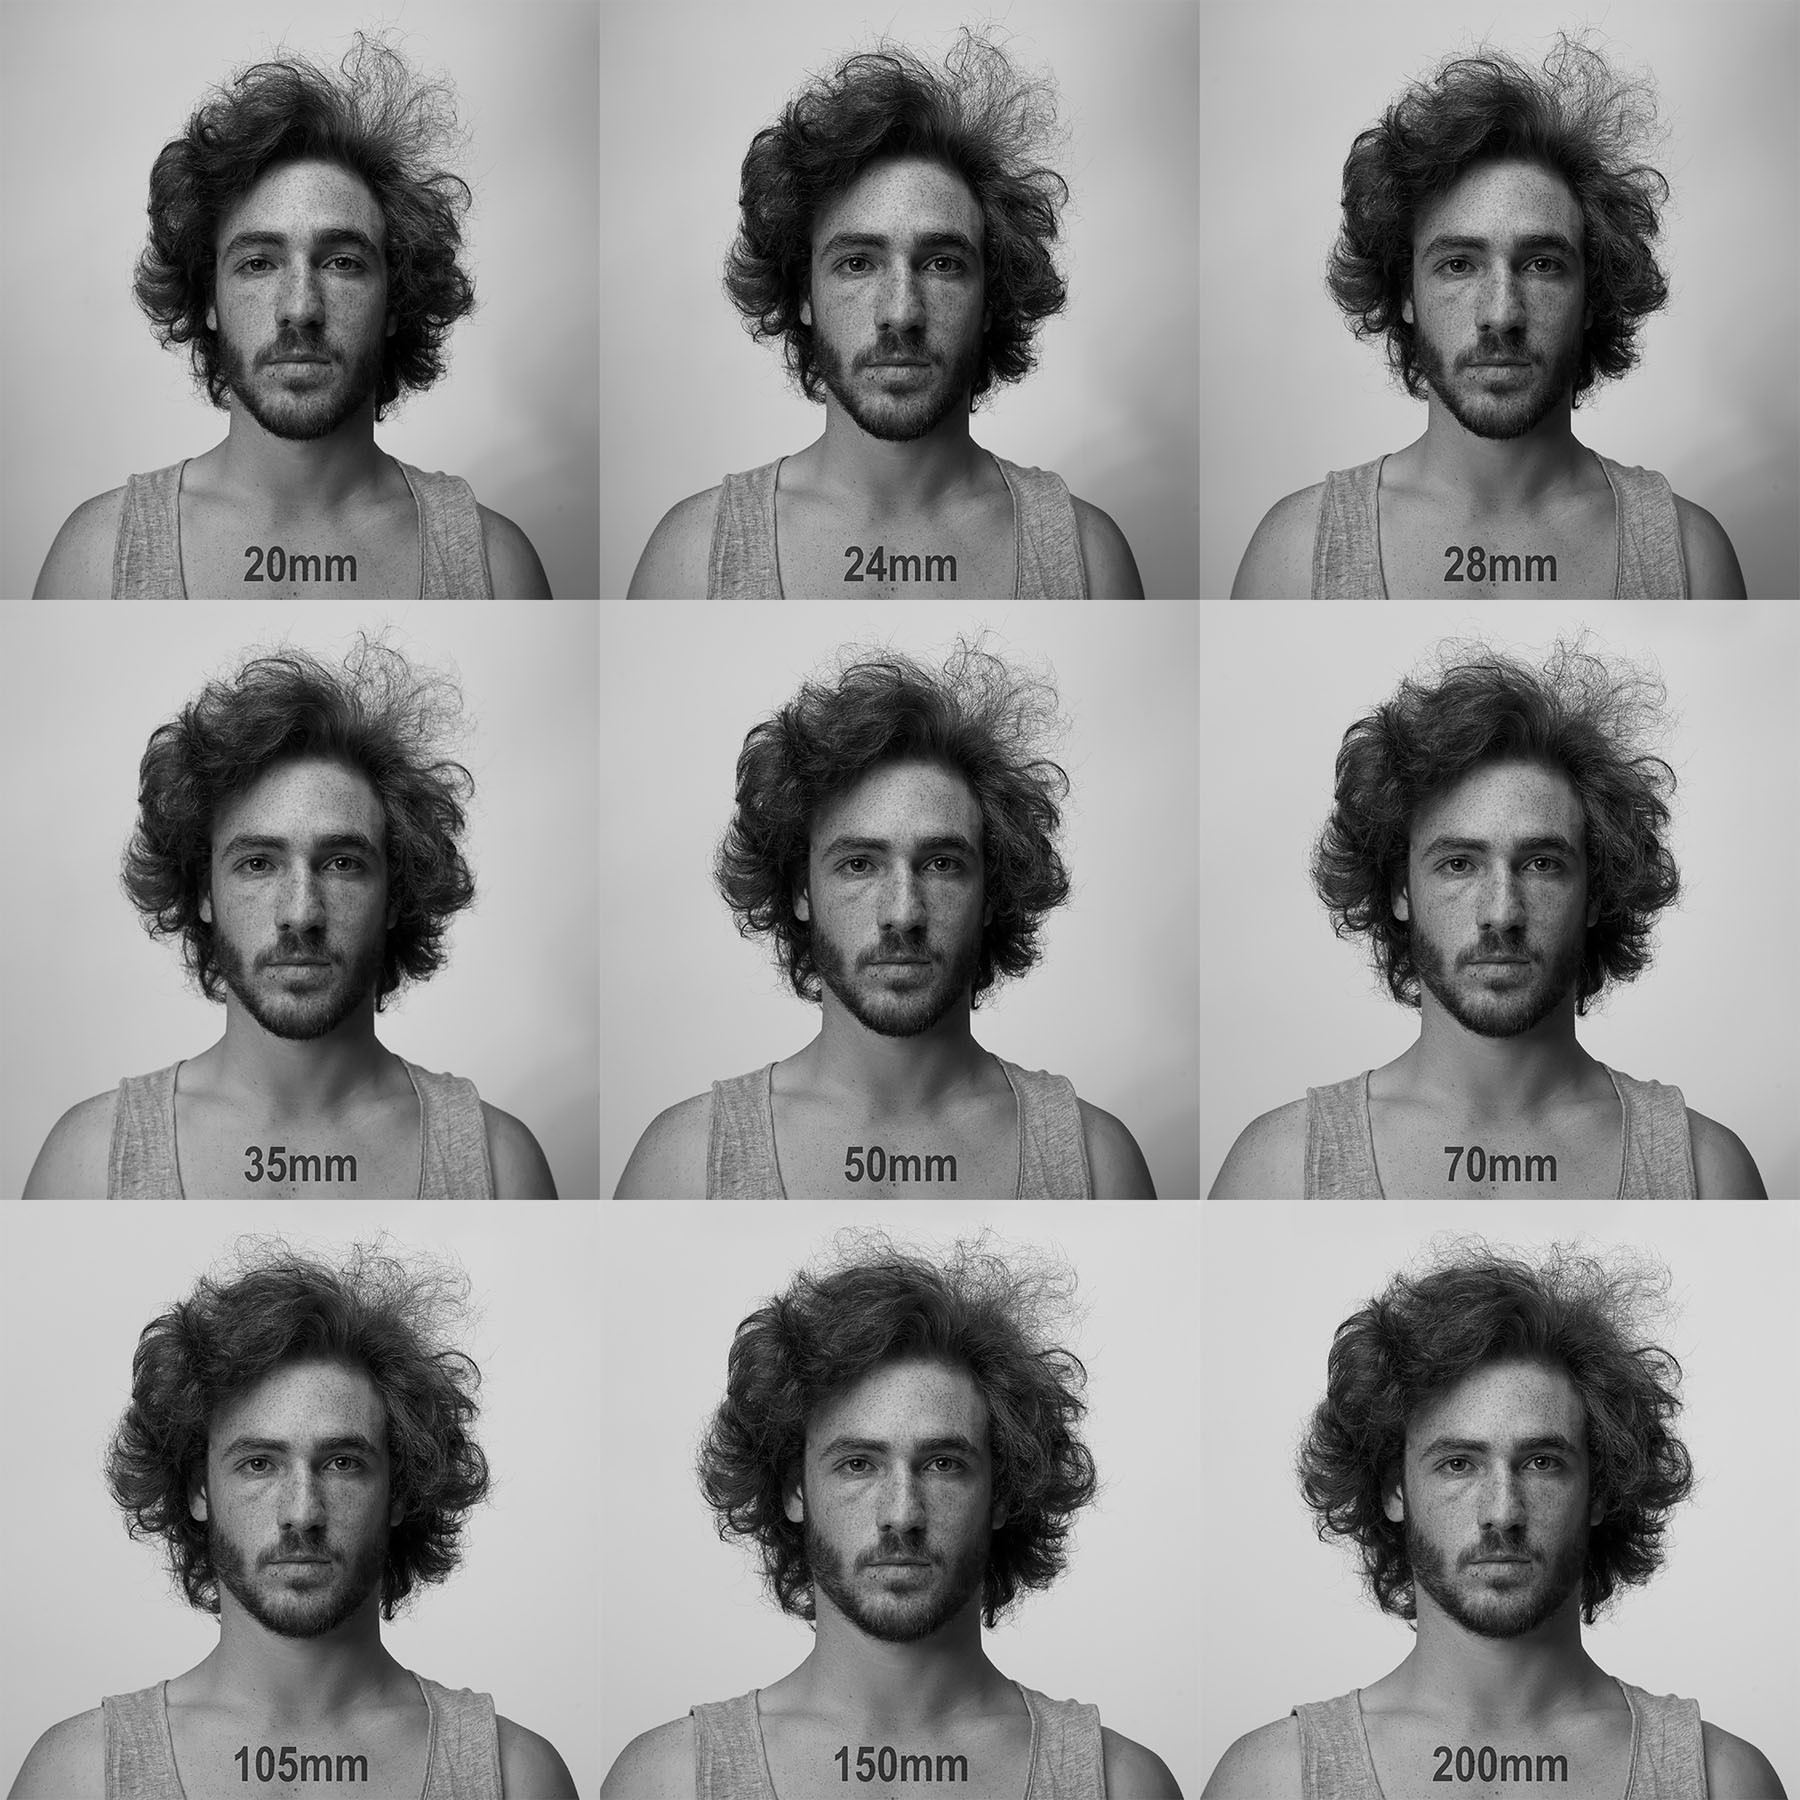 Comparison of the person's look with different photo lenses